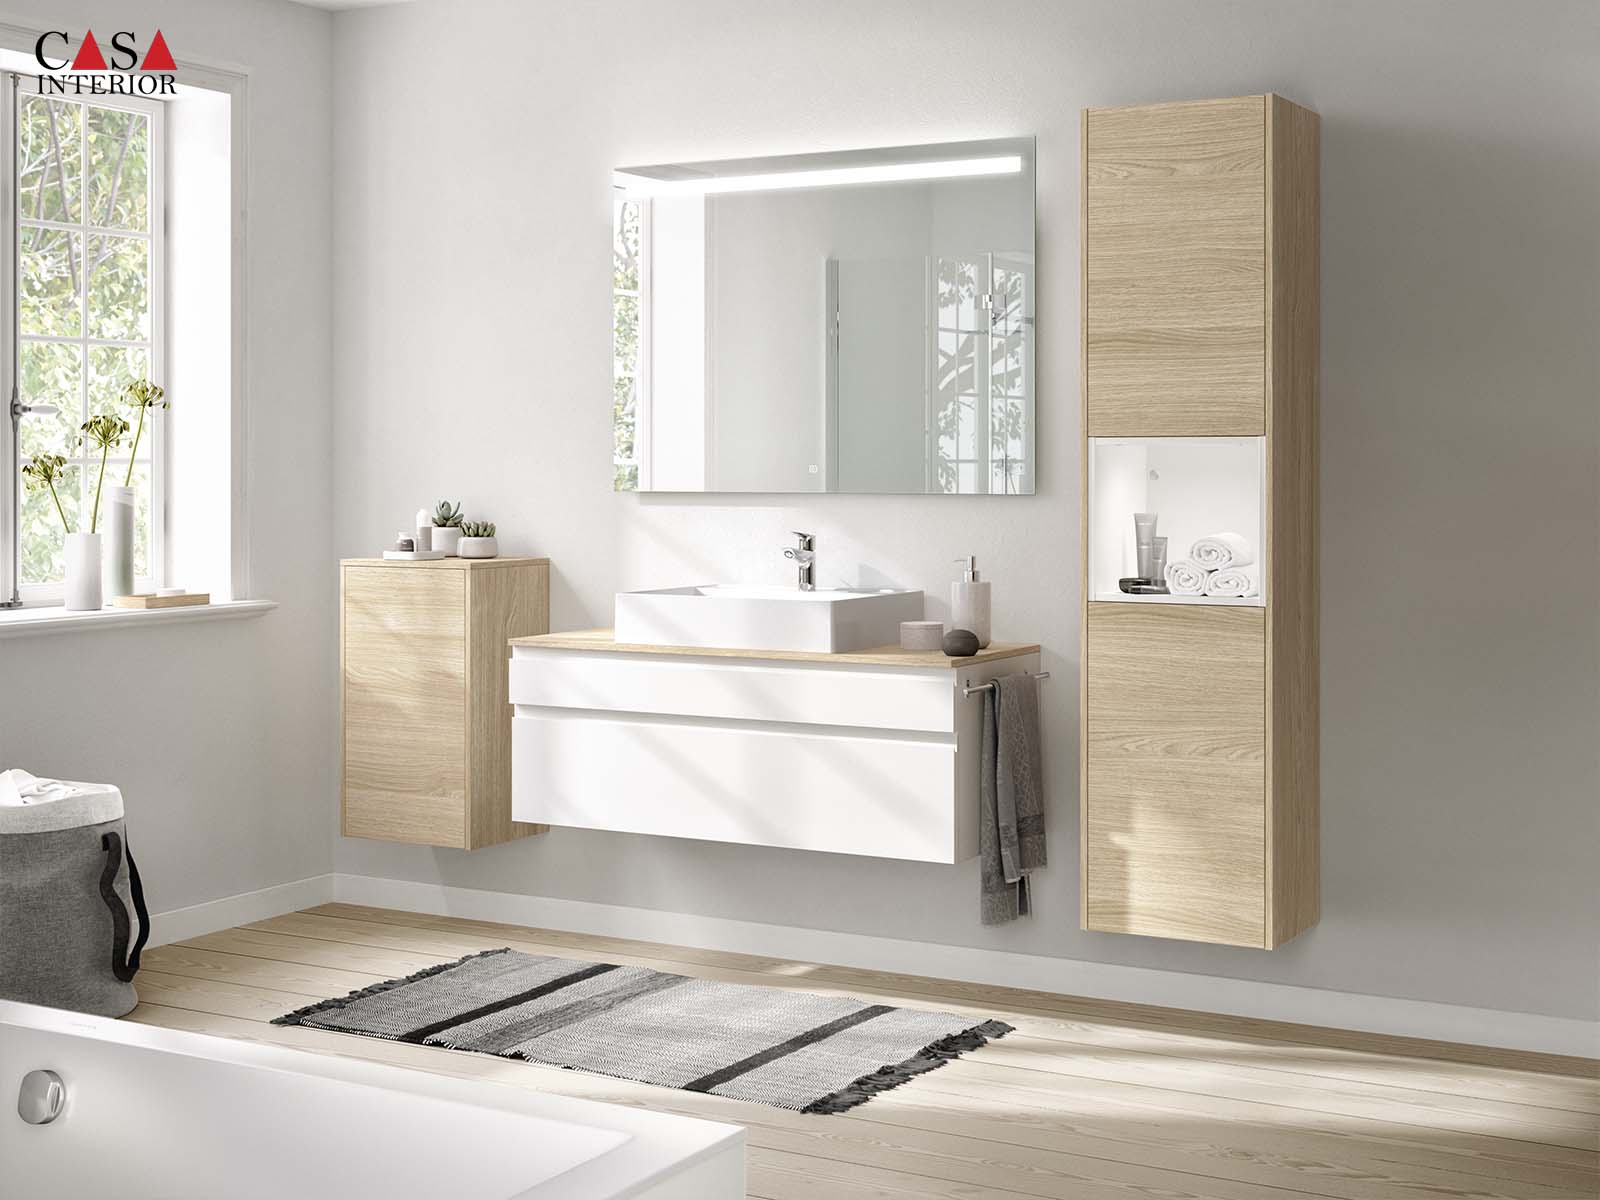 Küchentime Inline Lacquer, honed alpine white 551 - Bathroom